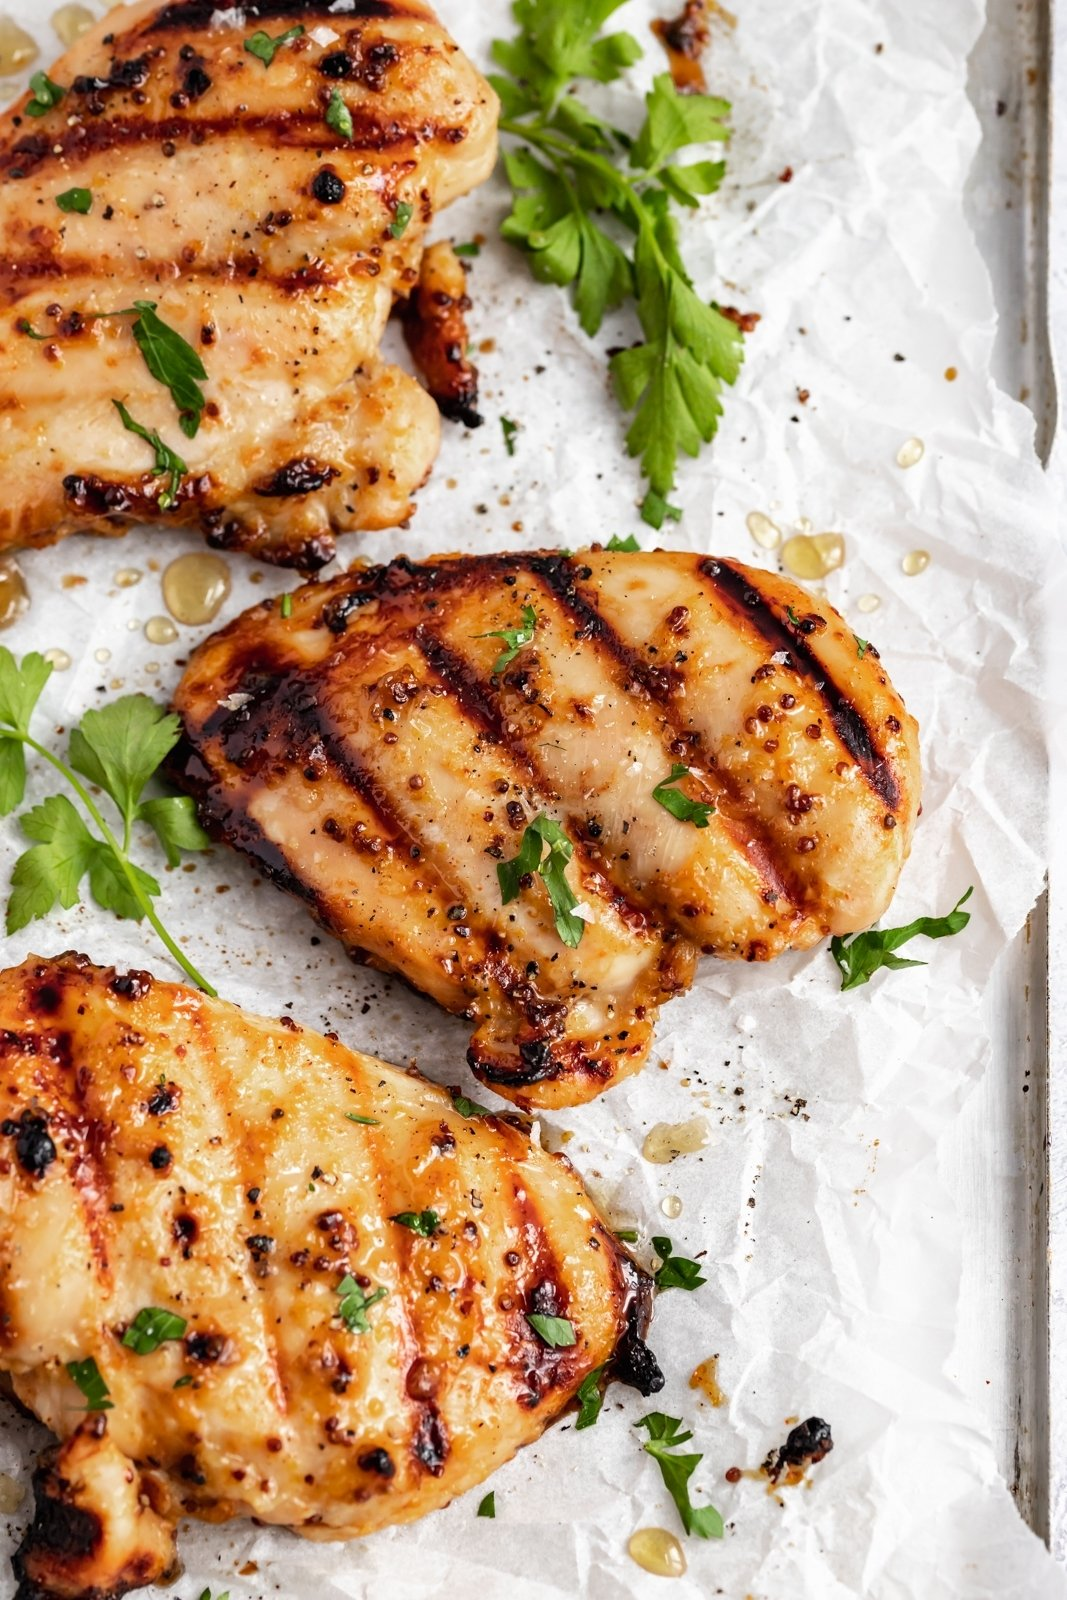 Honey Mustard Chicken Baked Or Grilled Ambitious Kitchen